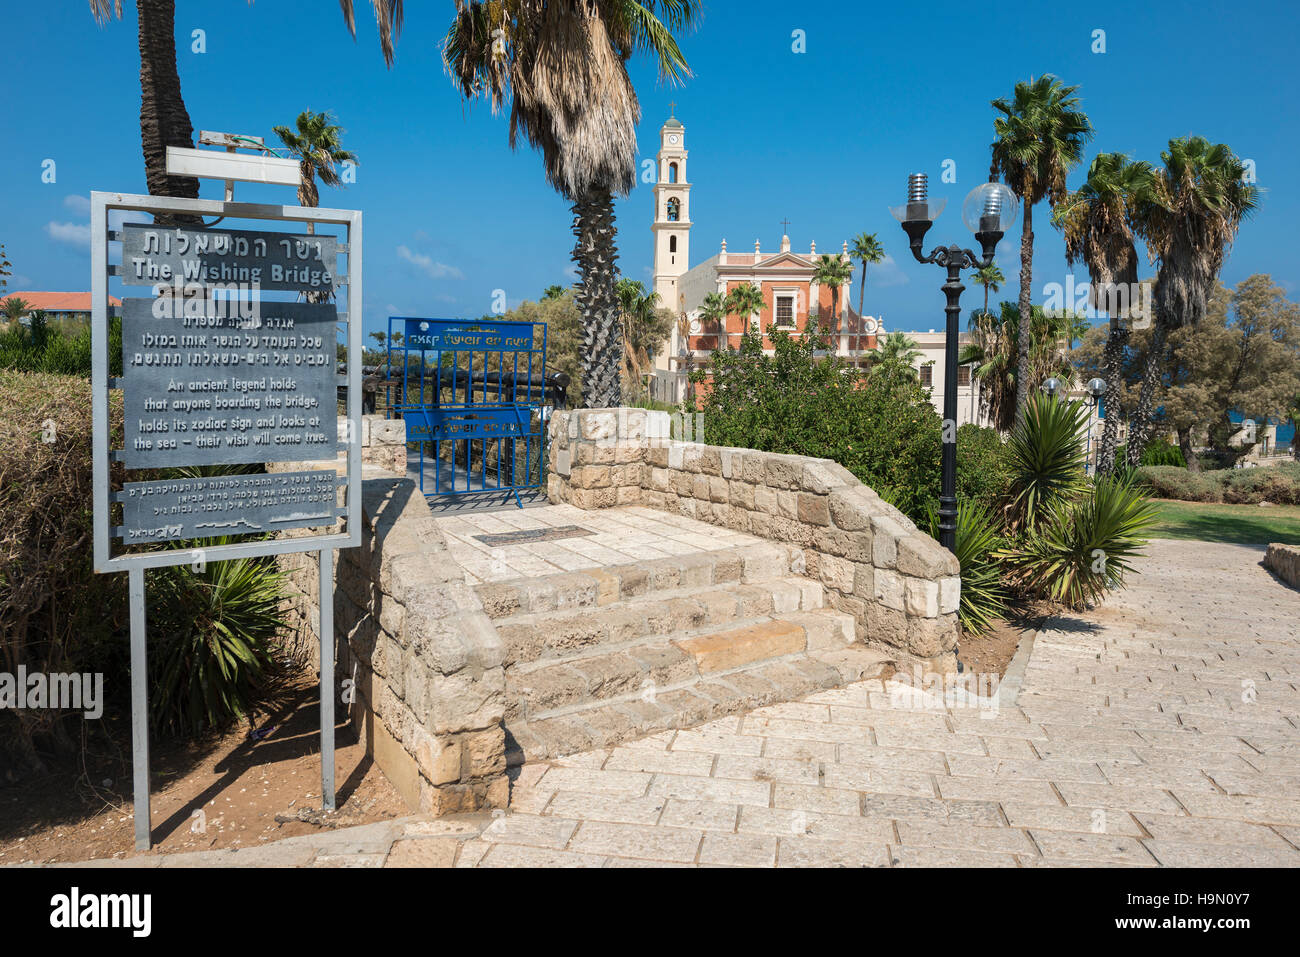 The famous wishing bridge in Jaffa with St. Peter's Church seen in the background. Israel - Stock Image